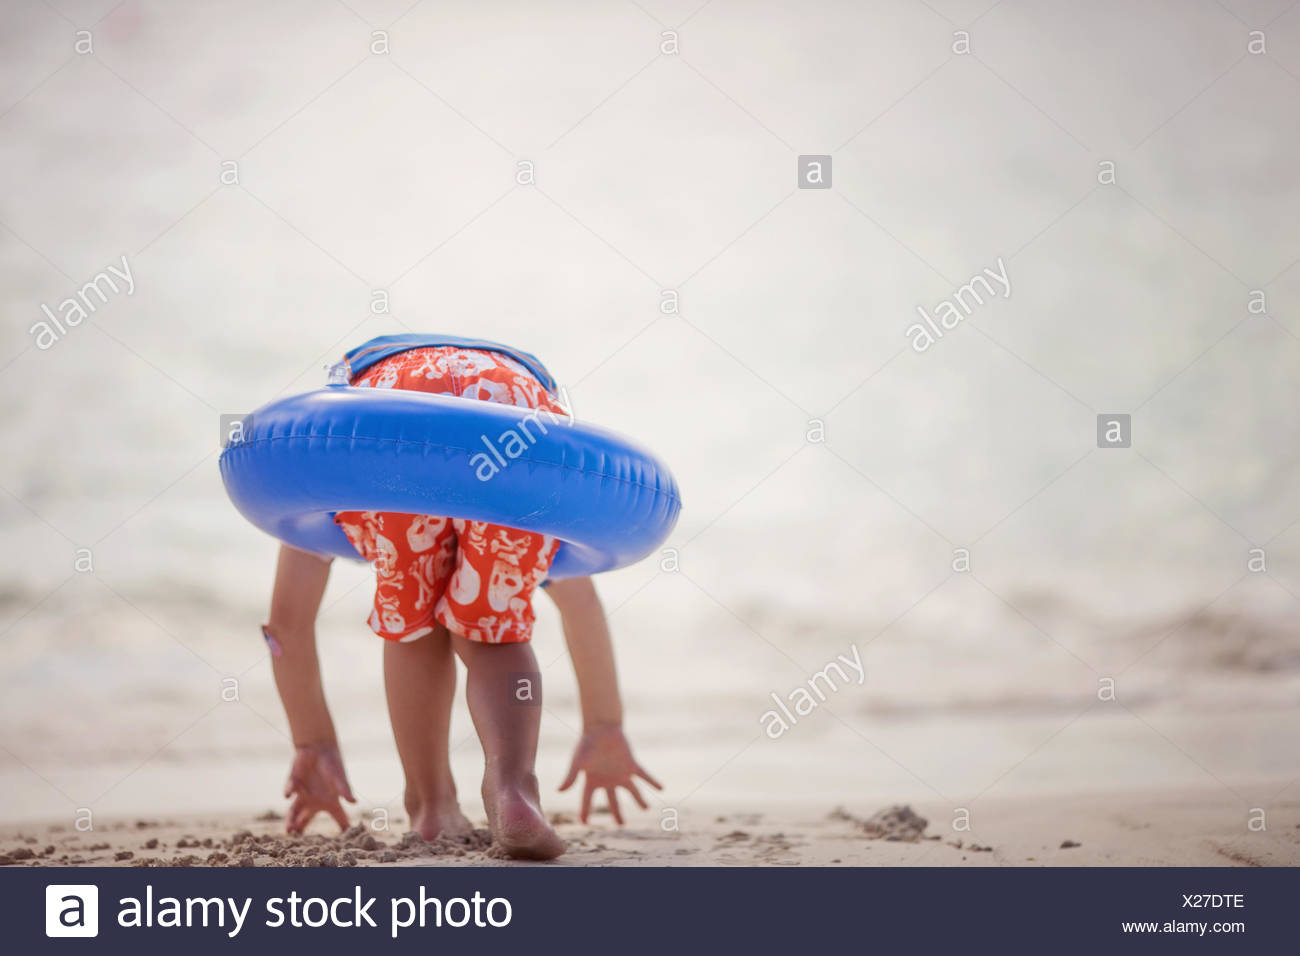 Boy wearing a rubber ring on the beach, Playa del Carmen, Mexico - Stock Image